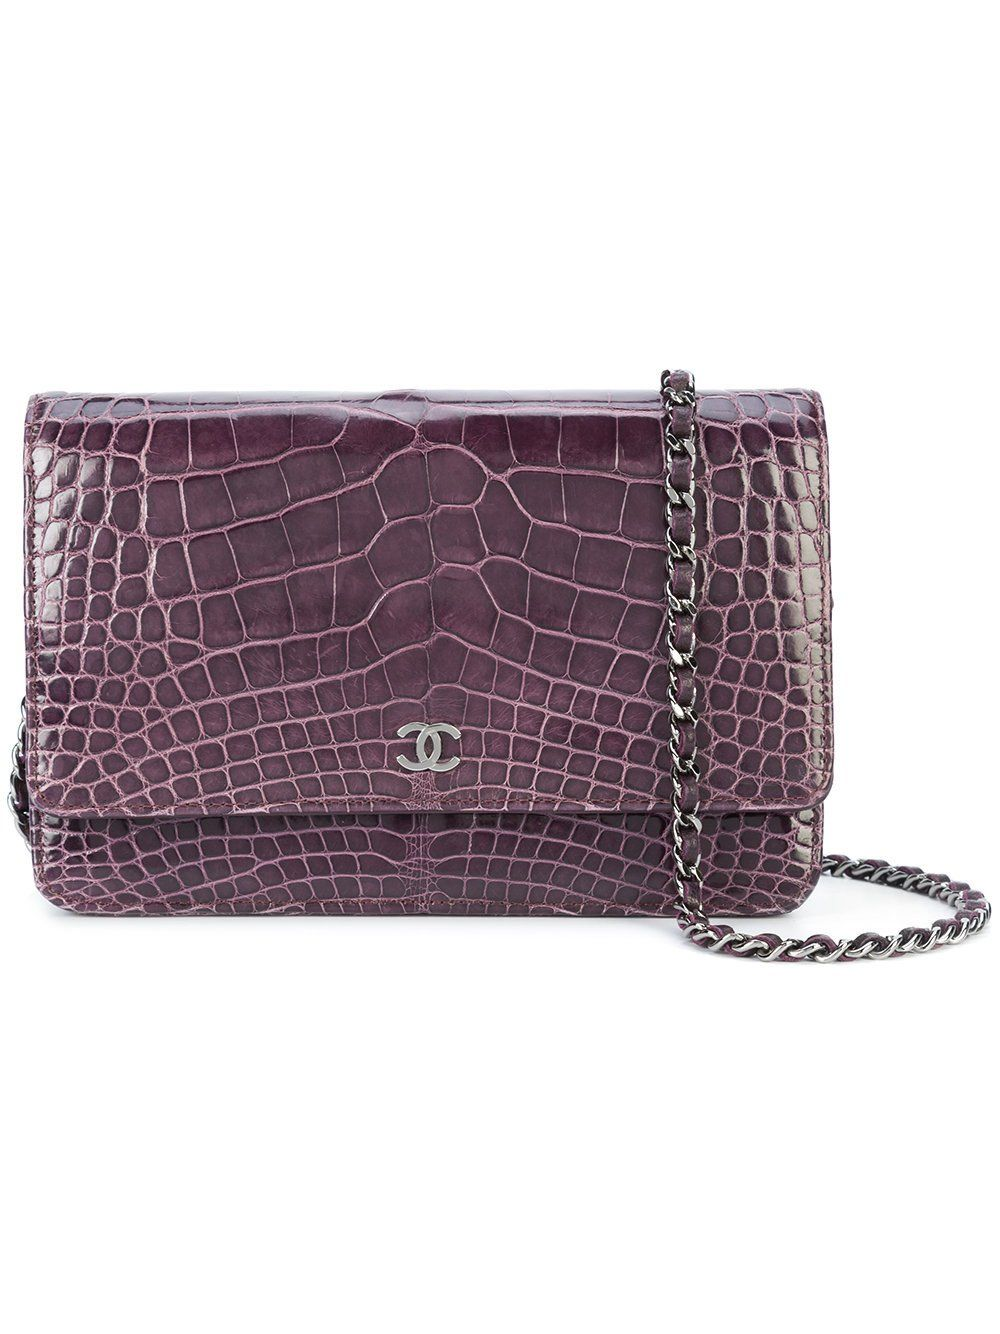 eaddbc7cae73 Chanel Amethyst Purple Alligator Wallet on Chain WOC Bag | Products ...